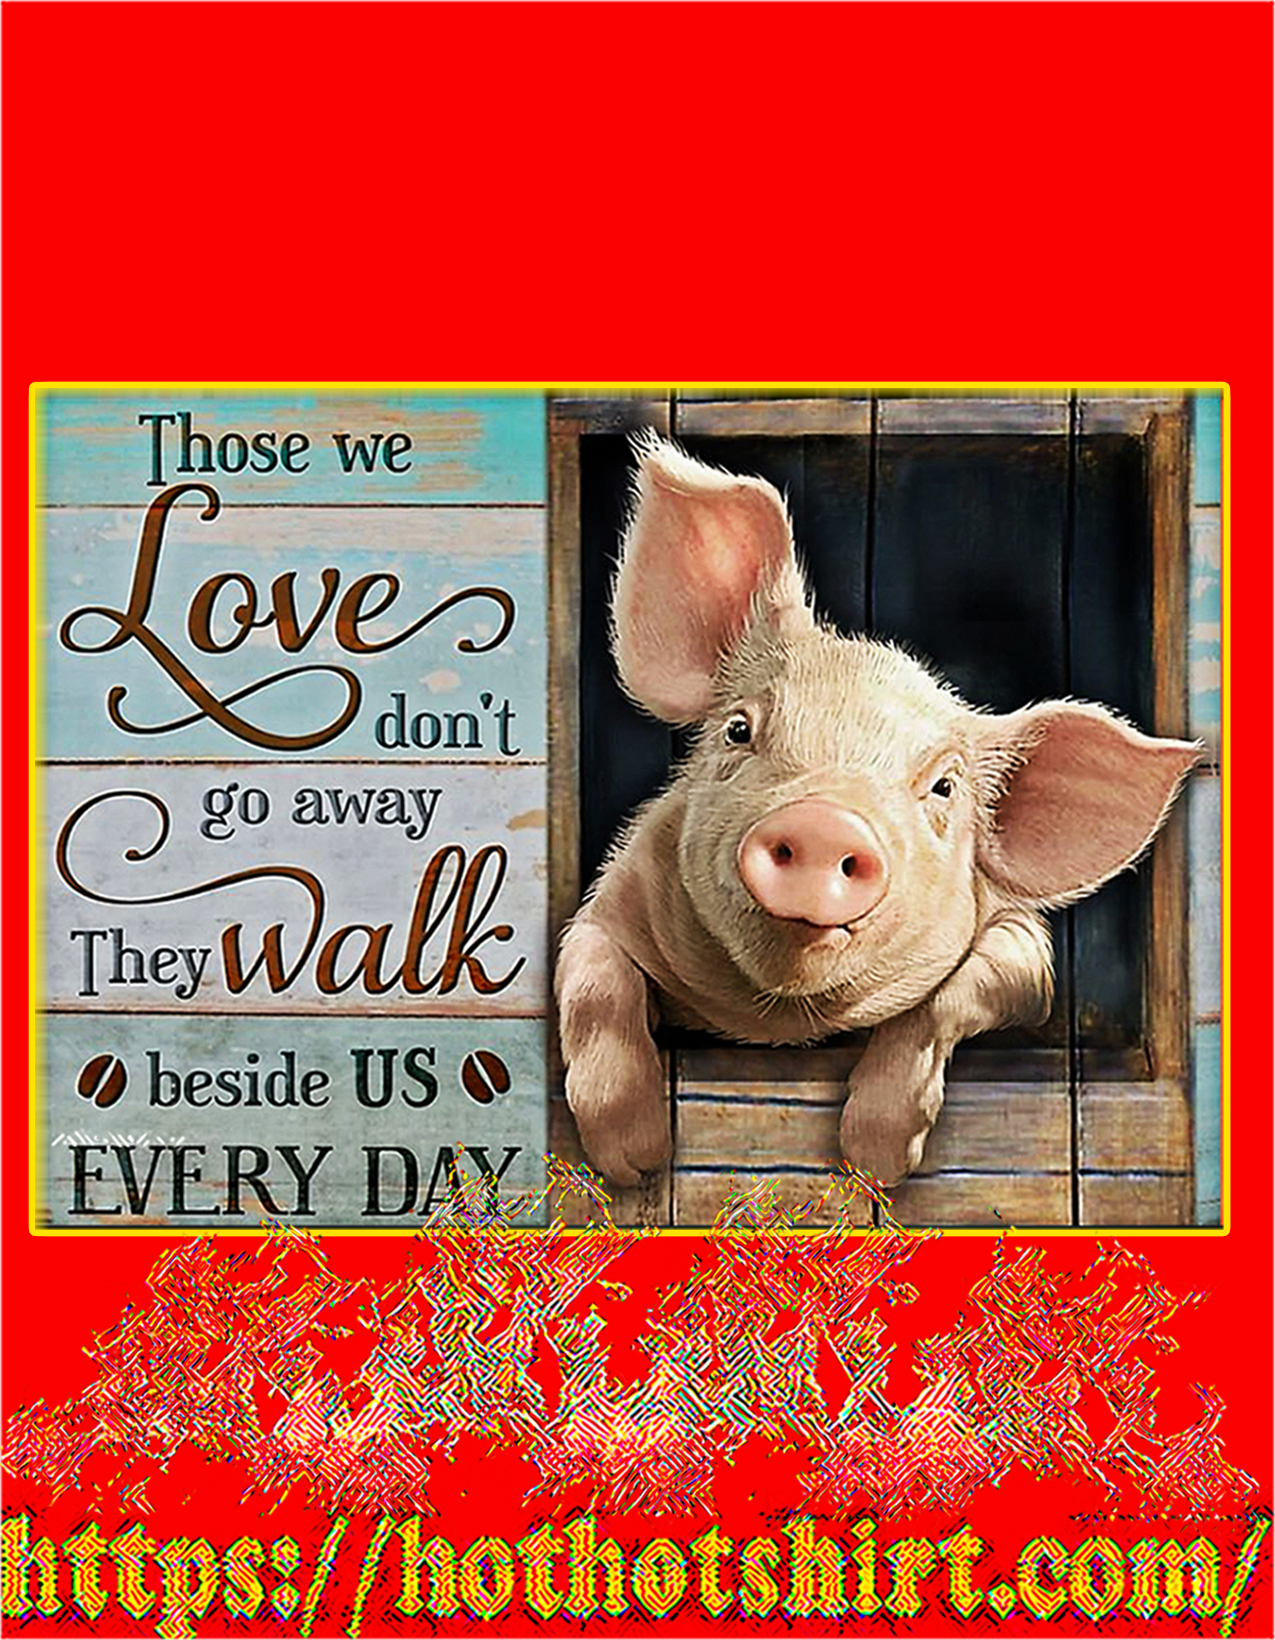 Pig Those we love don't go away poster - A2